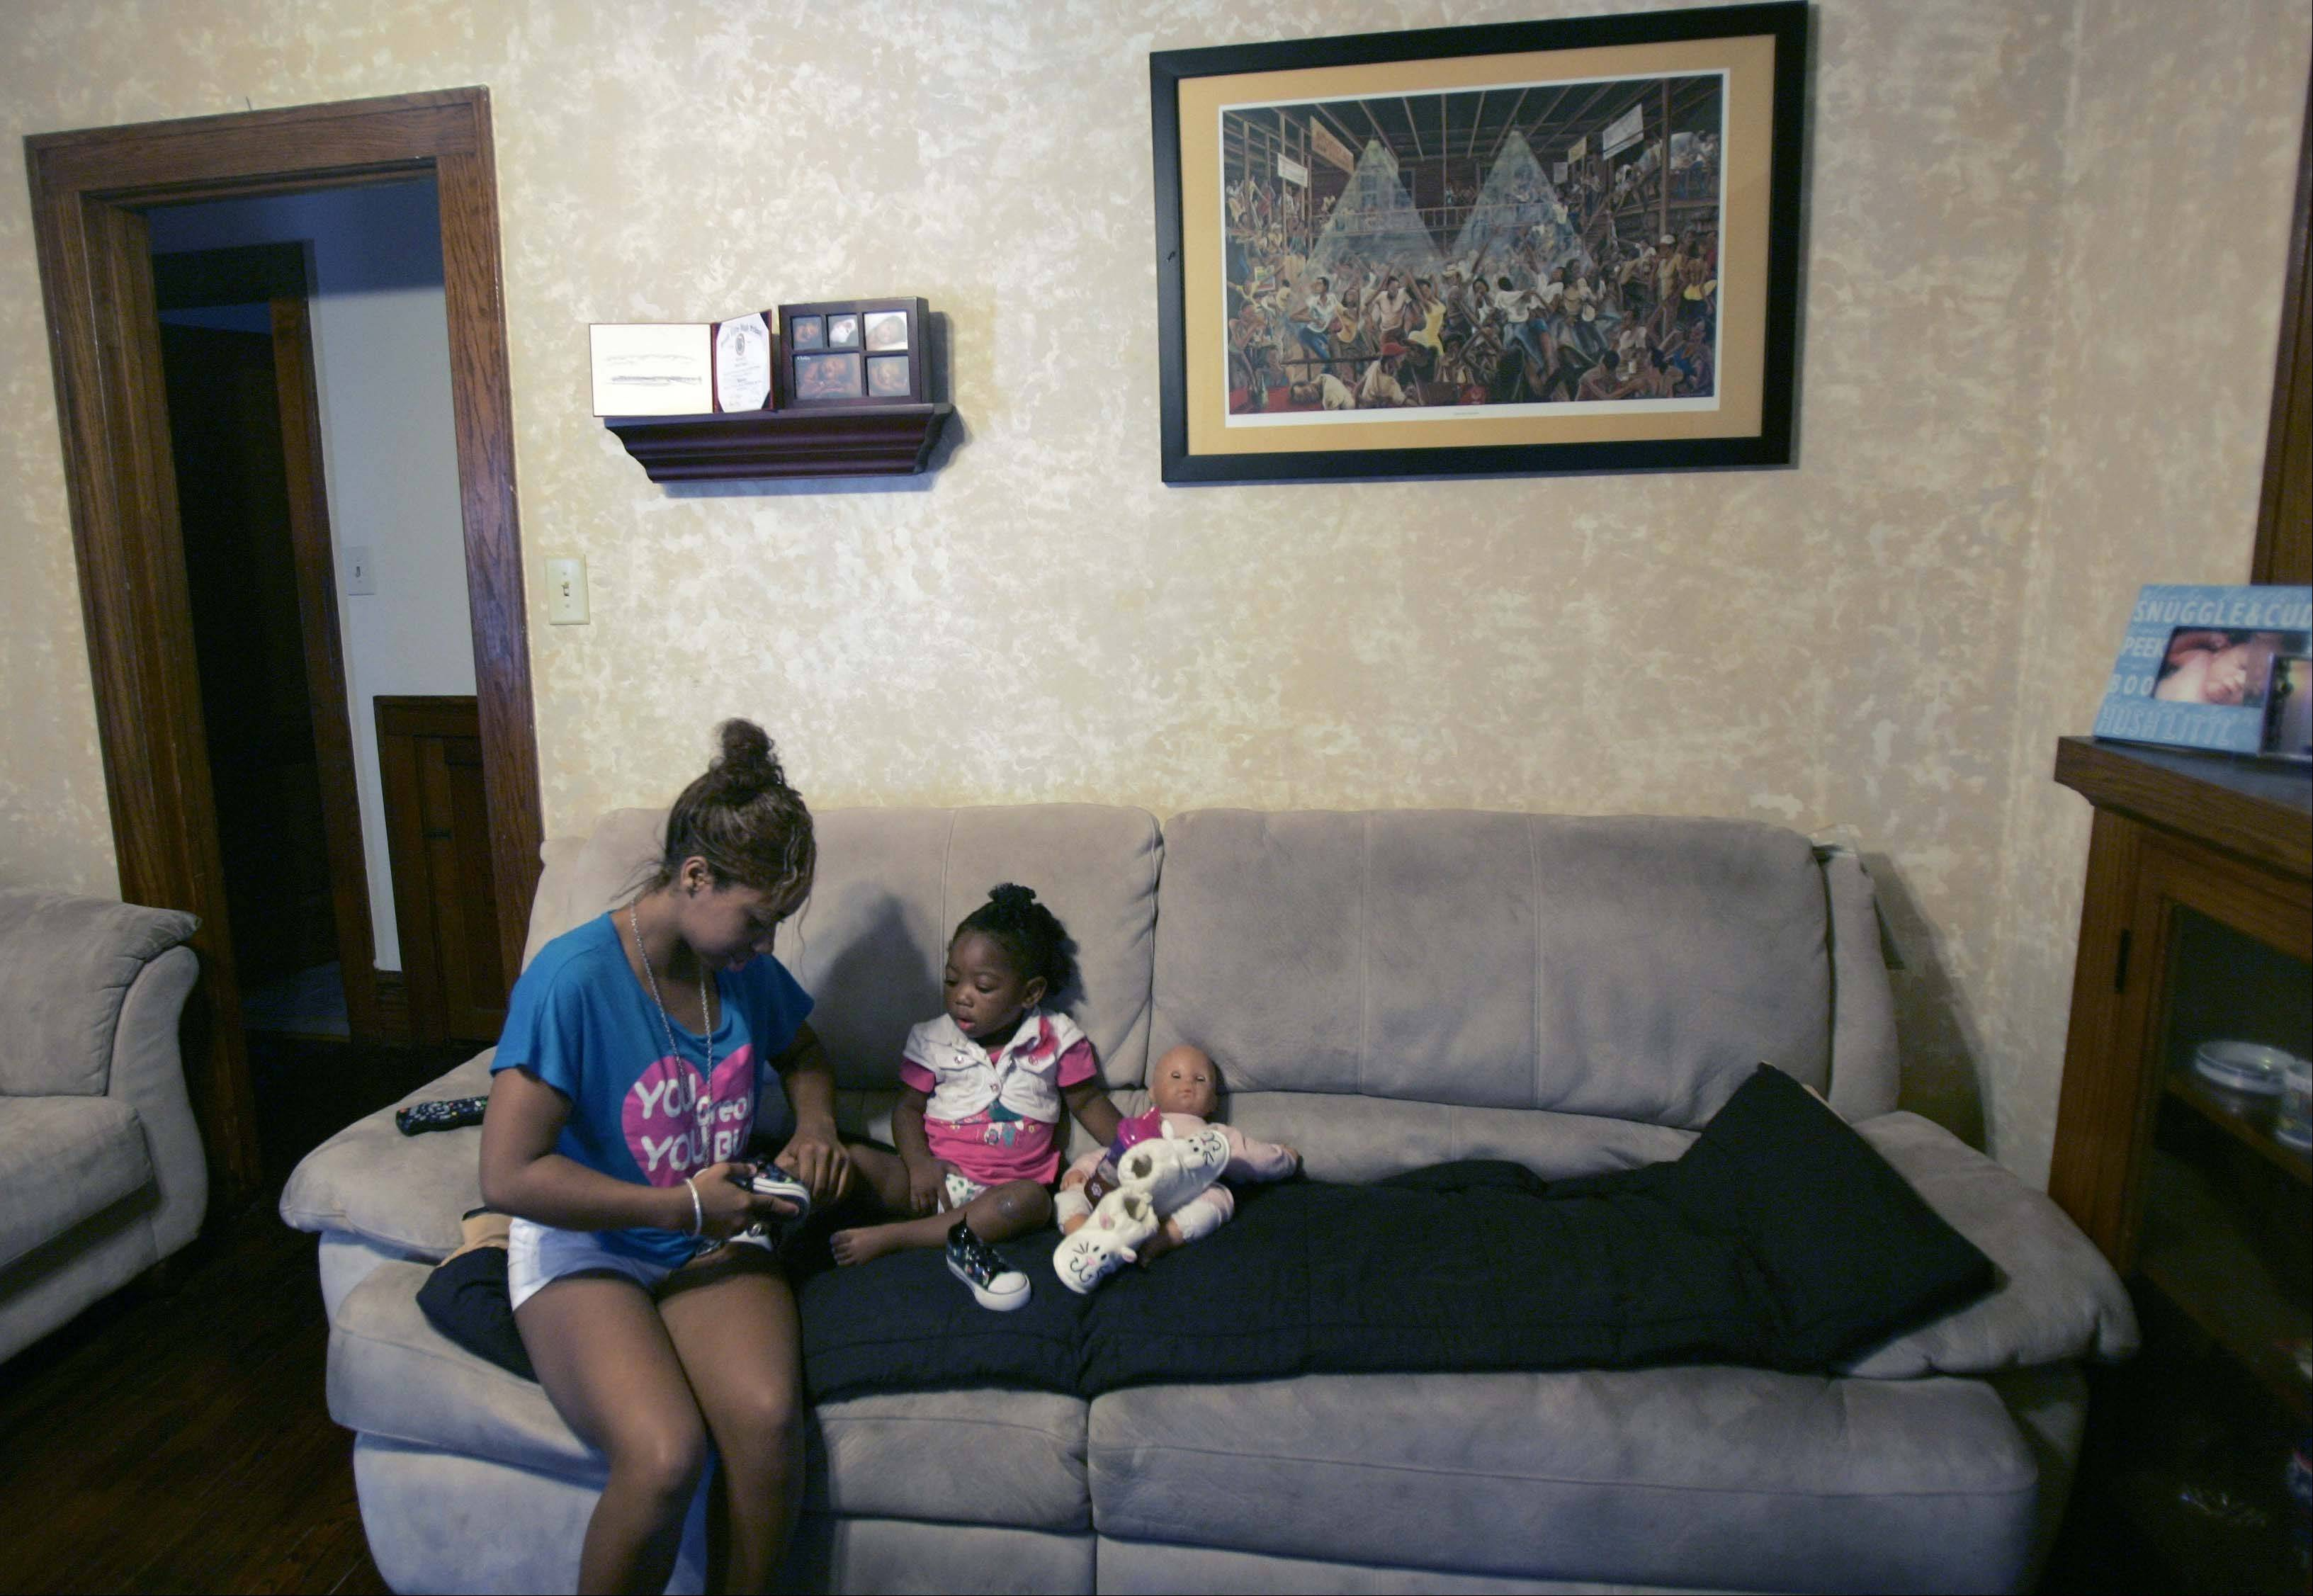 Chrystal Stokes, 19, of Elgin gets her daughter, Nevaeh Johnson, ready for a walk at their home. Stokes found out she was pregnant while she was a sophomore at Elgin High School. Title IX regulations concerning treatment of pregnant and parenting students are part of the reason Stokes was able to graduate. She plans to attend Elgin Community College in January.